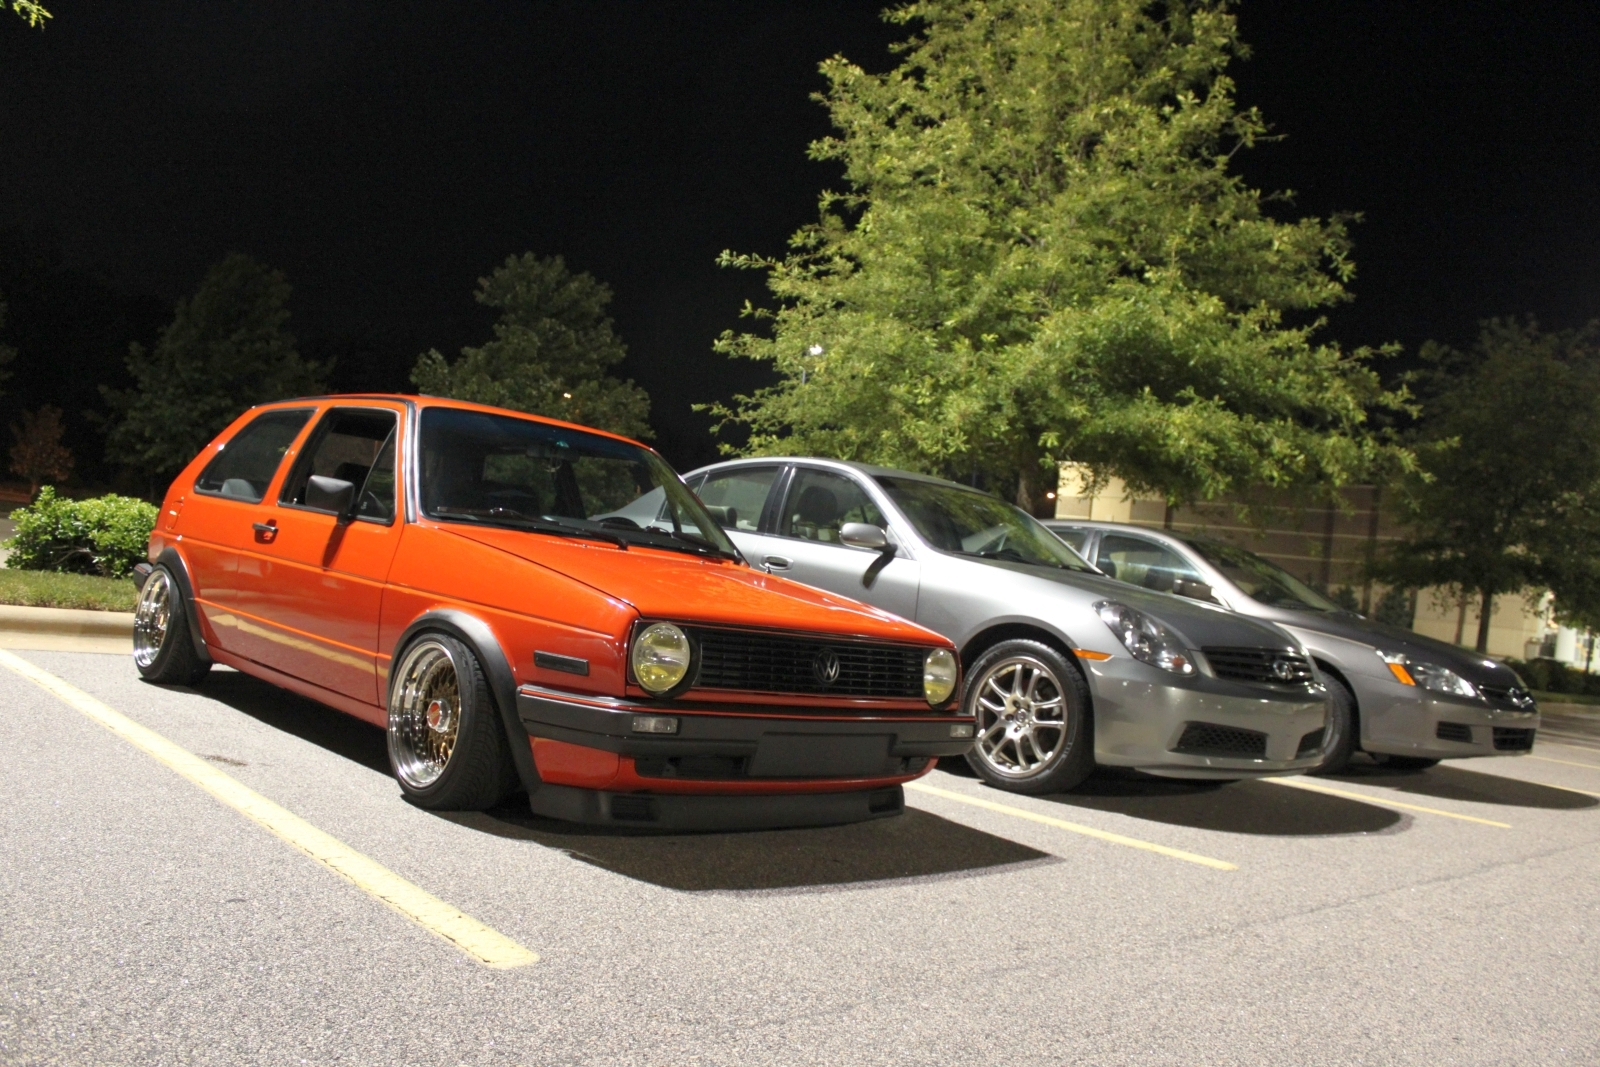 1985 MkII Golf GTI (with